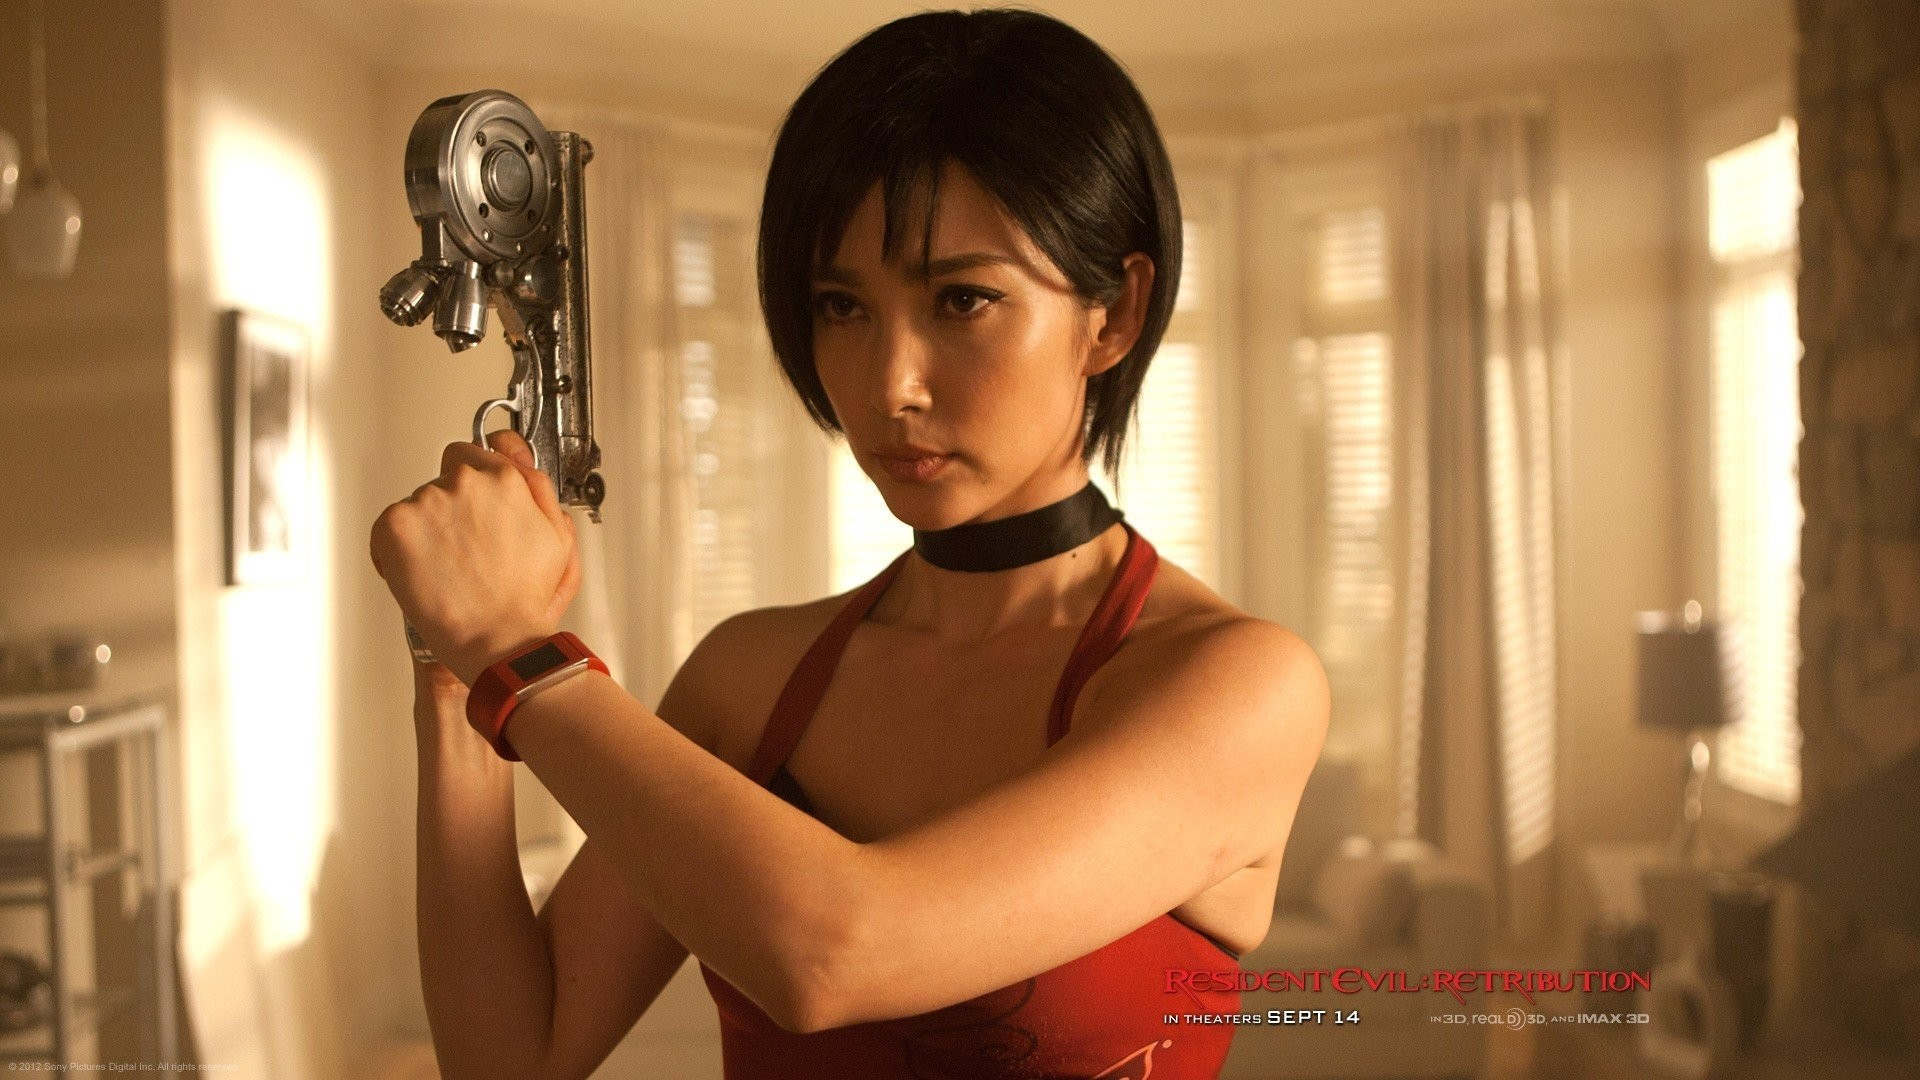 1920x1080 Movies Resident Evil Retribution Ada Wong